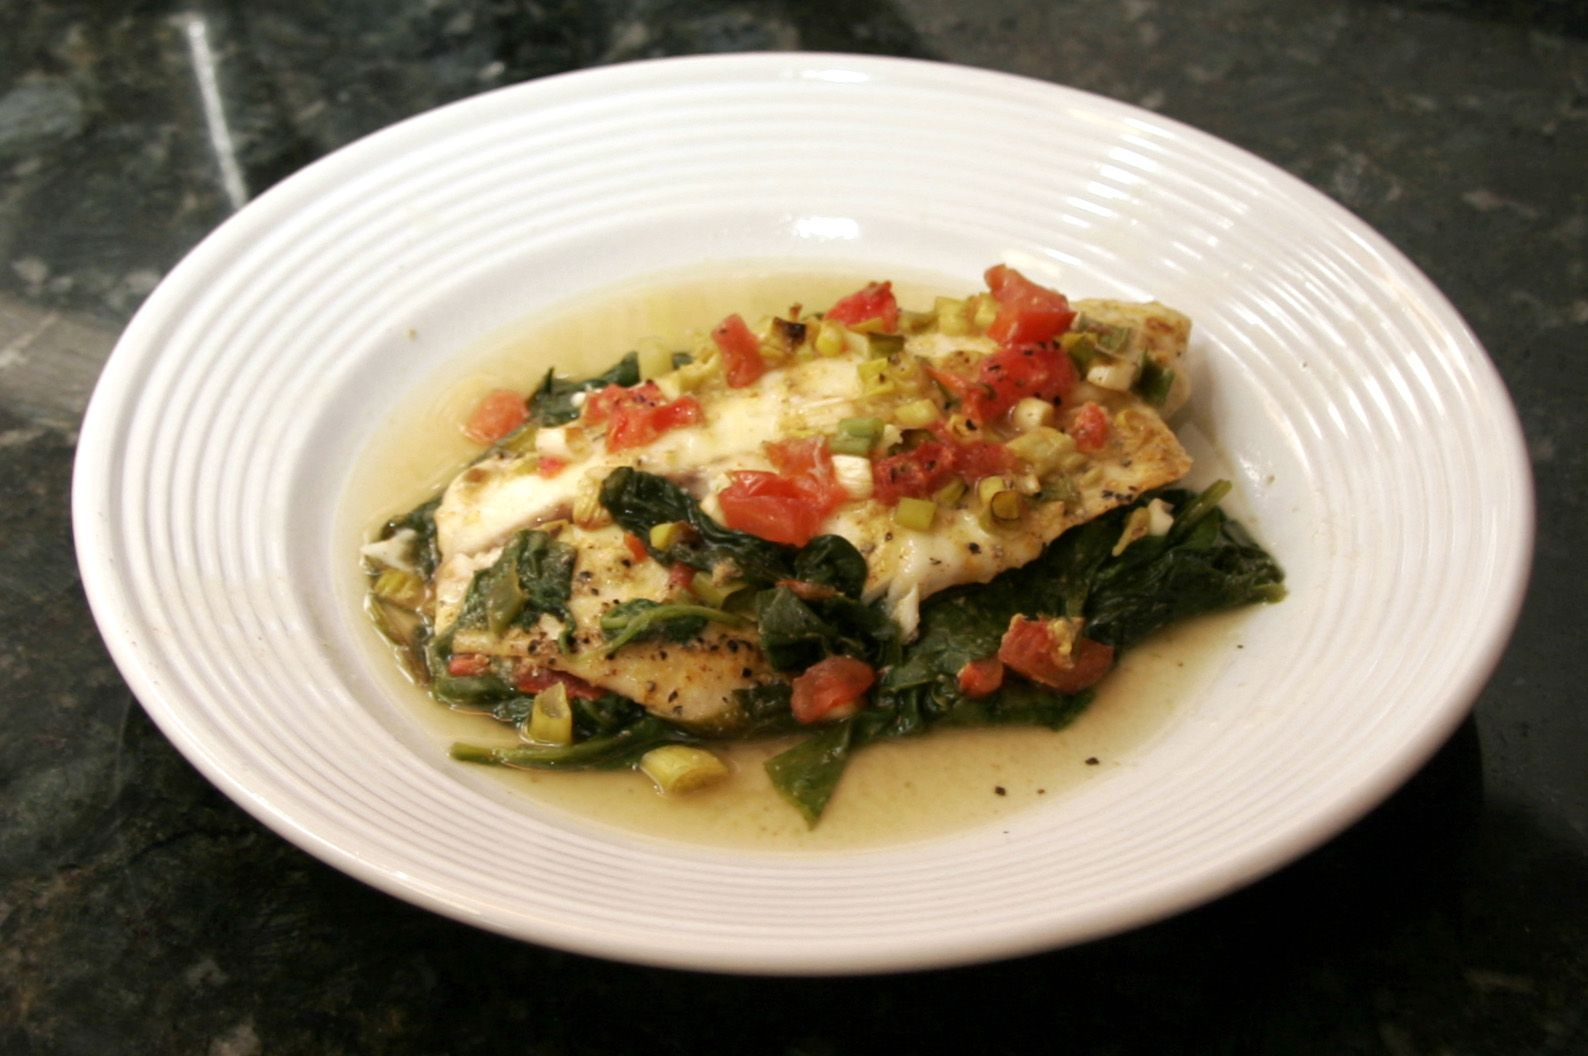 Baked Tilapia And Spinach Recipe